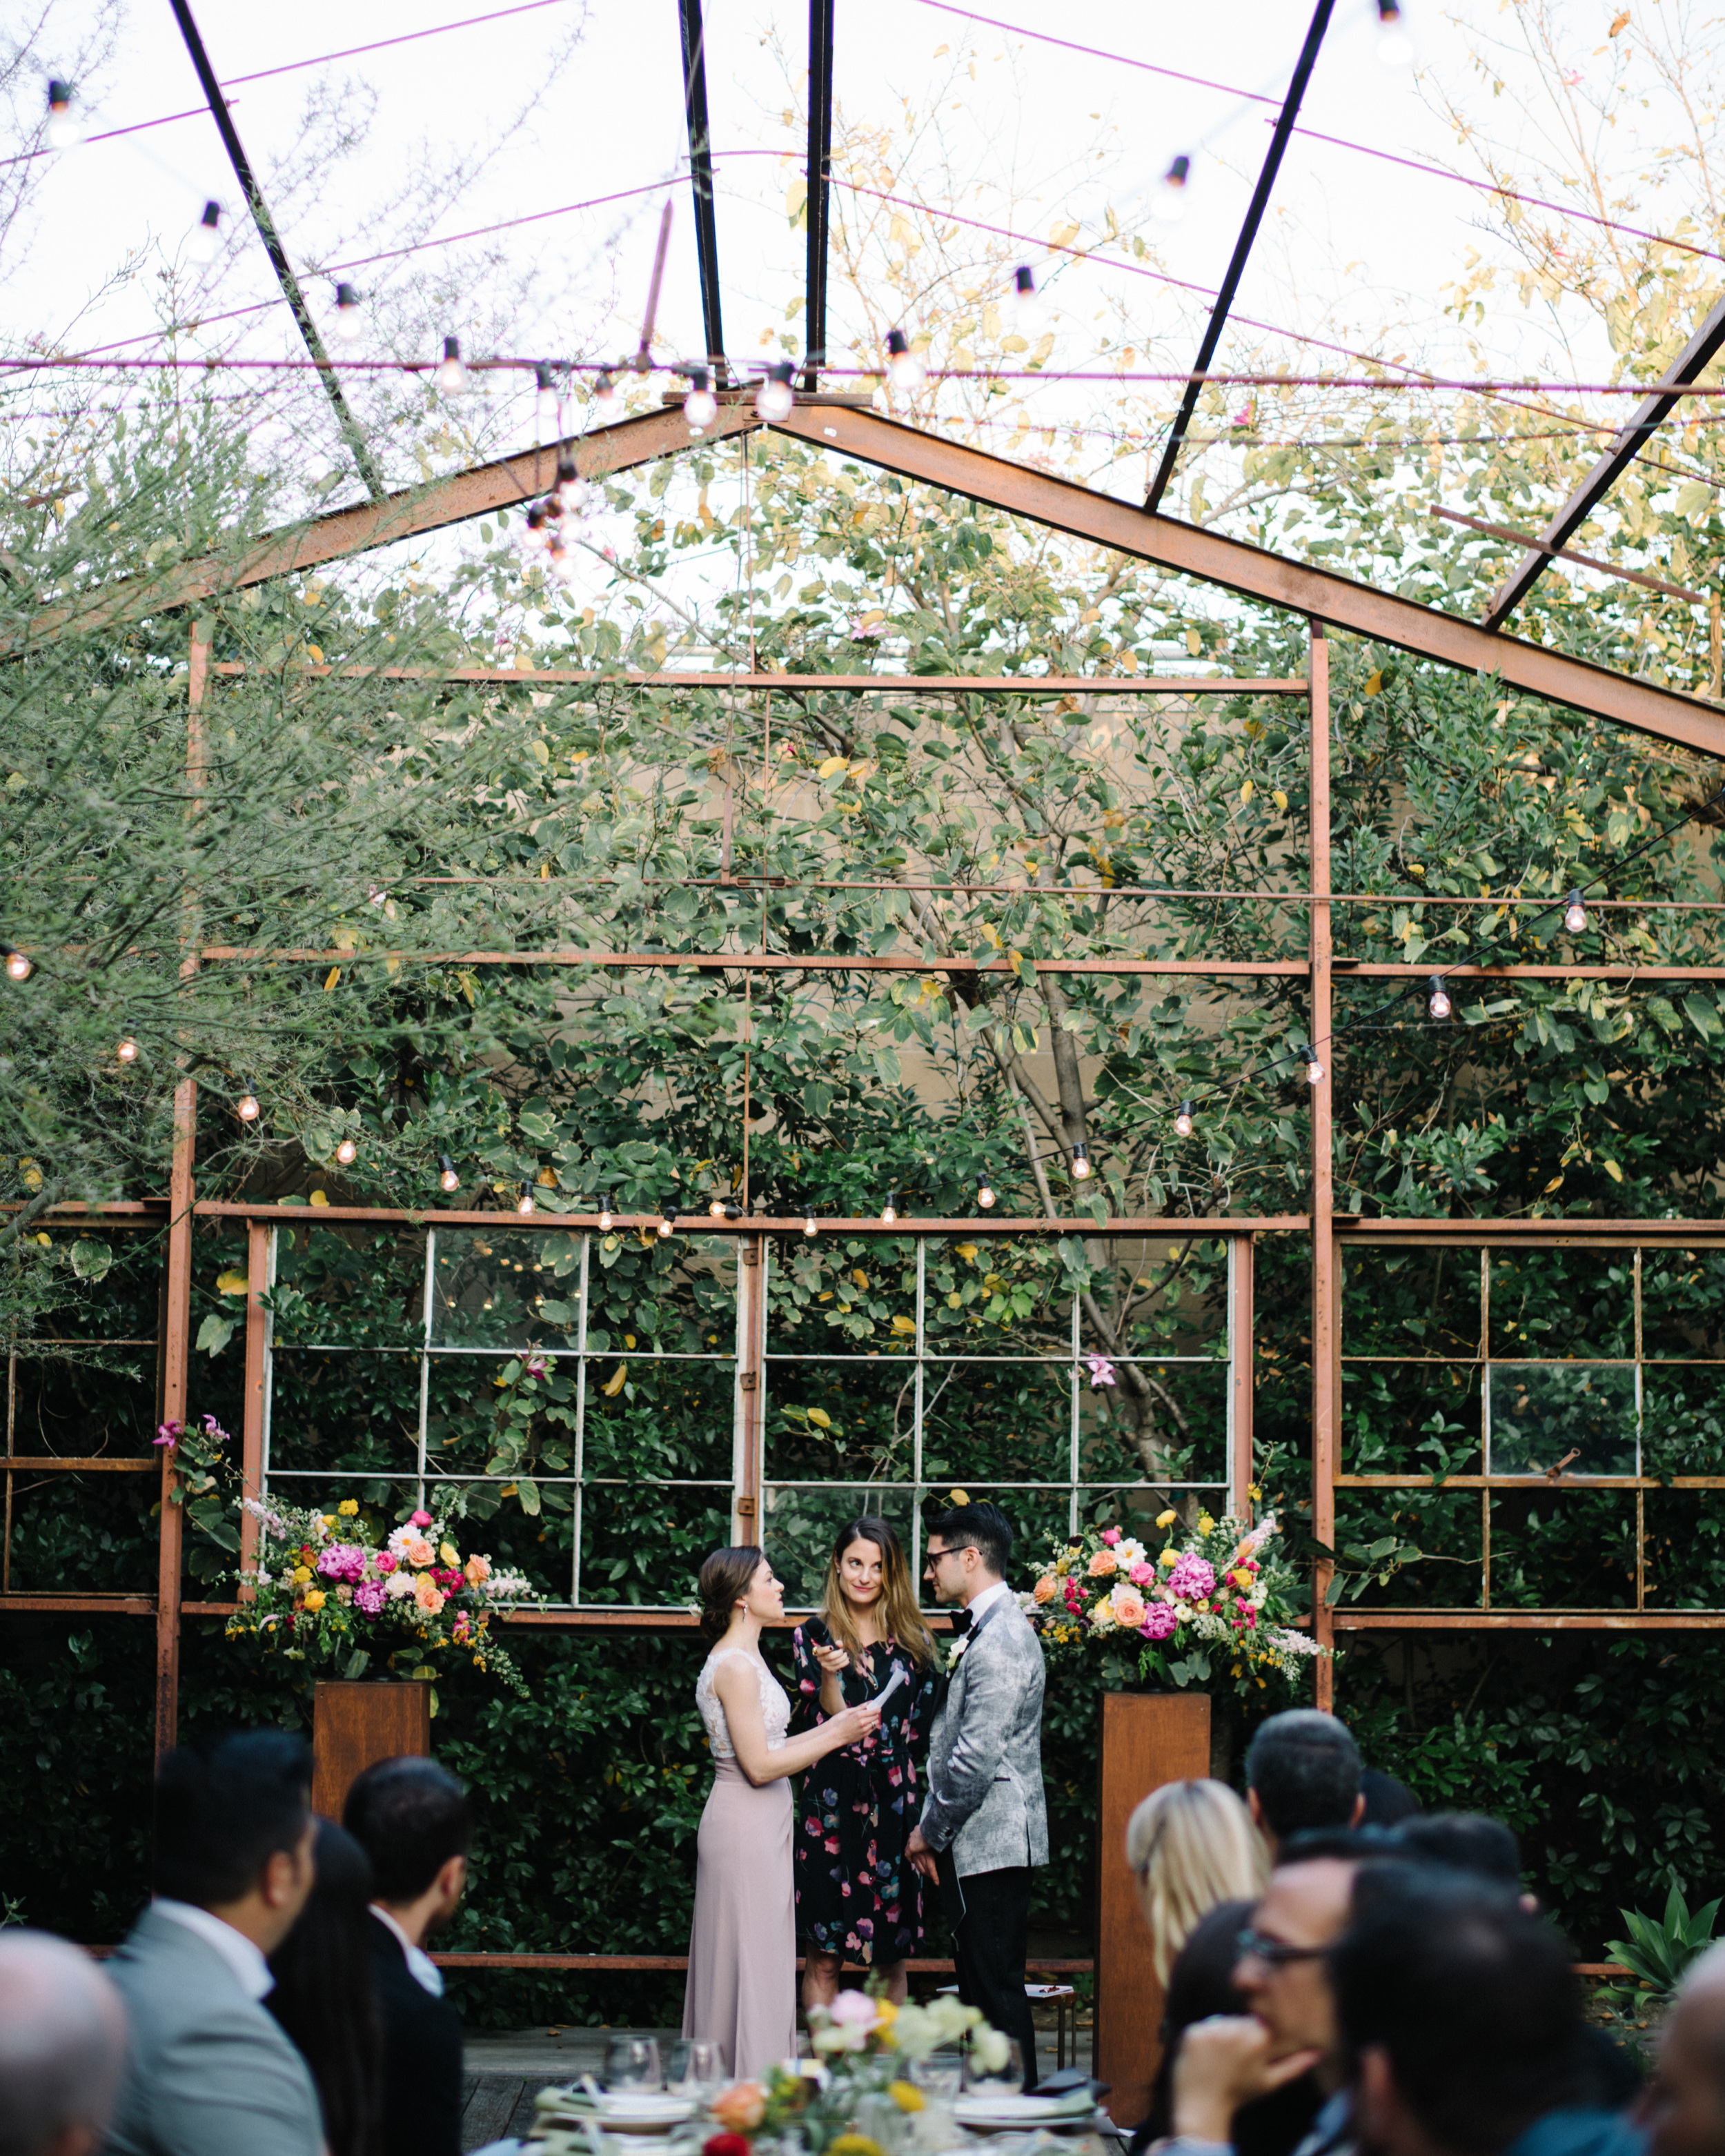 wedding_millwick_los_angeles-38.jpg